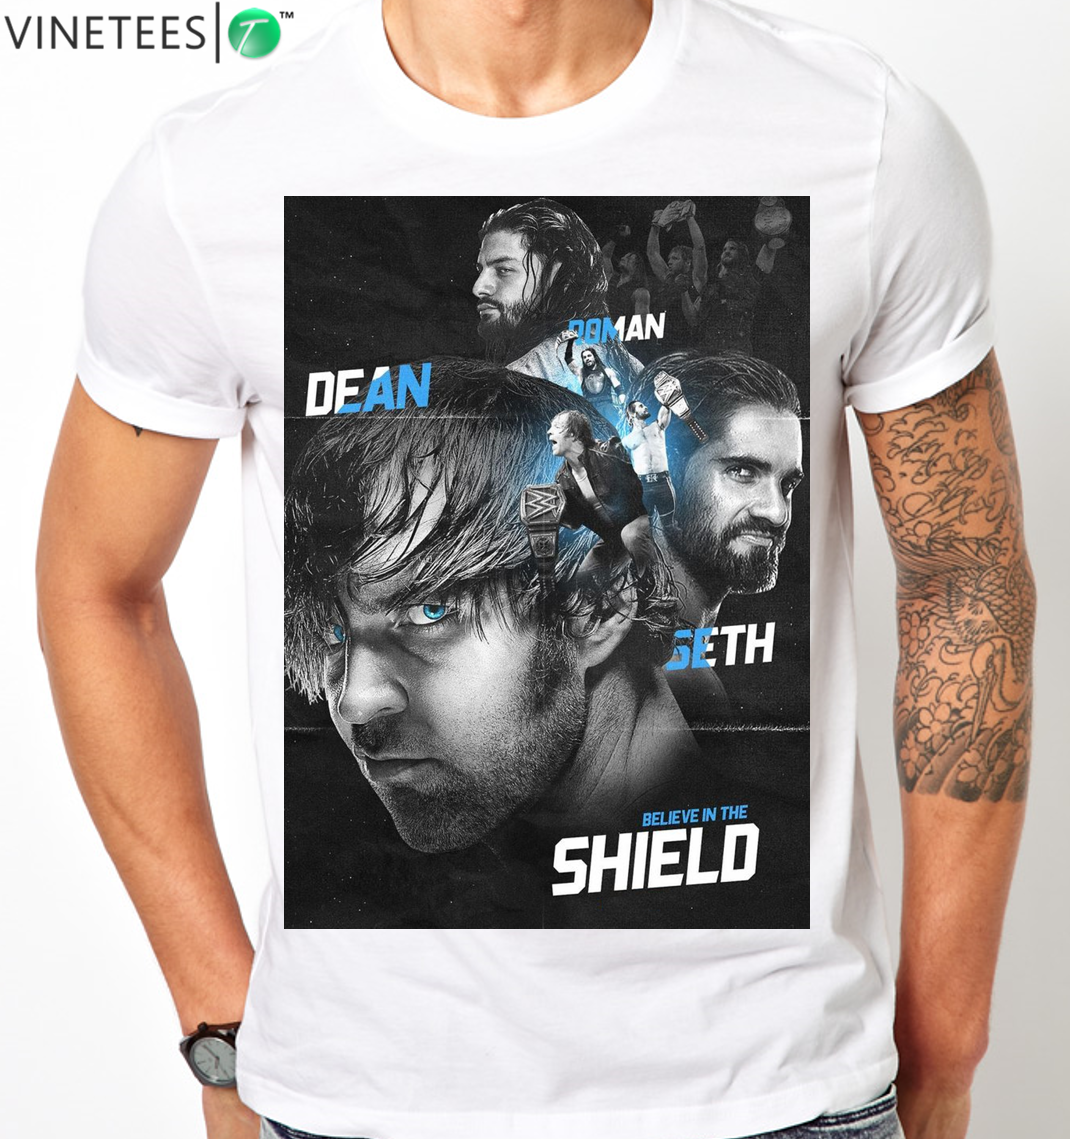 US $12 08 13% OFF|THE SHIELD REUNITED ROMAN REIGNS DEAN AMBROSE SETH  ROLLINS MENS KIDS T Shirt 100% Cotton Short Sleeve O Neck Tops Tee  Shirts-in